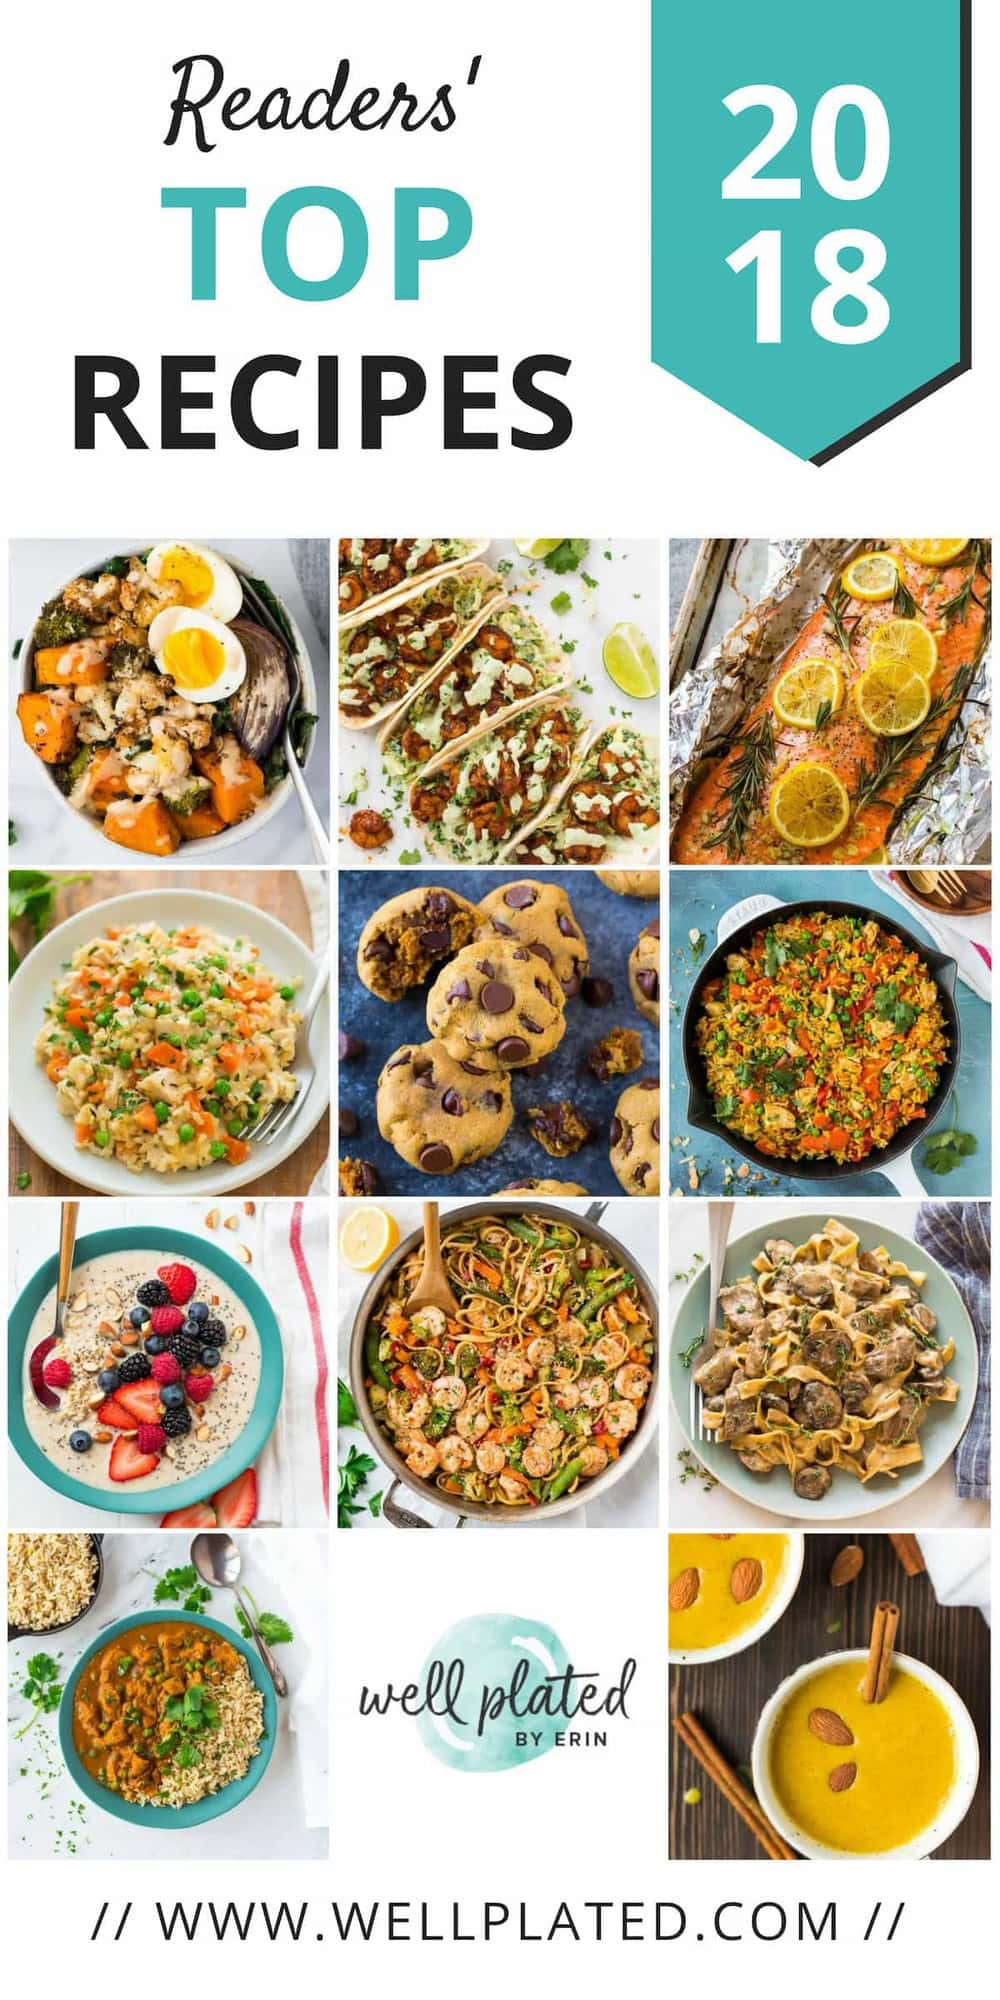 The Best Easy and Healthy Recipes of 2018. #wellplated #healthy